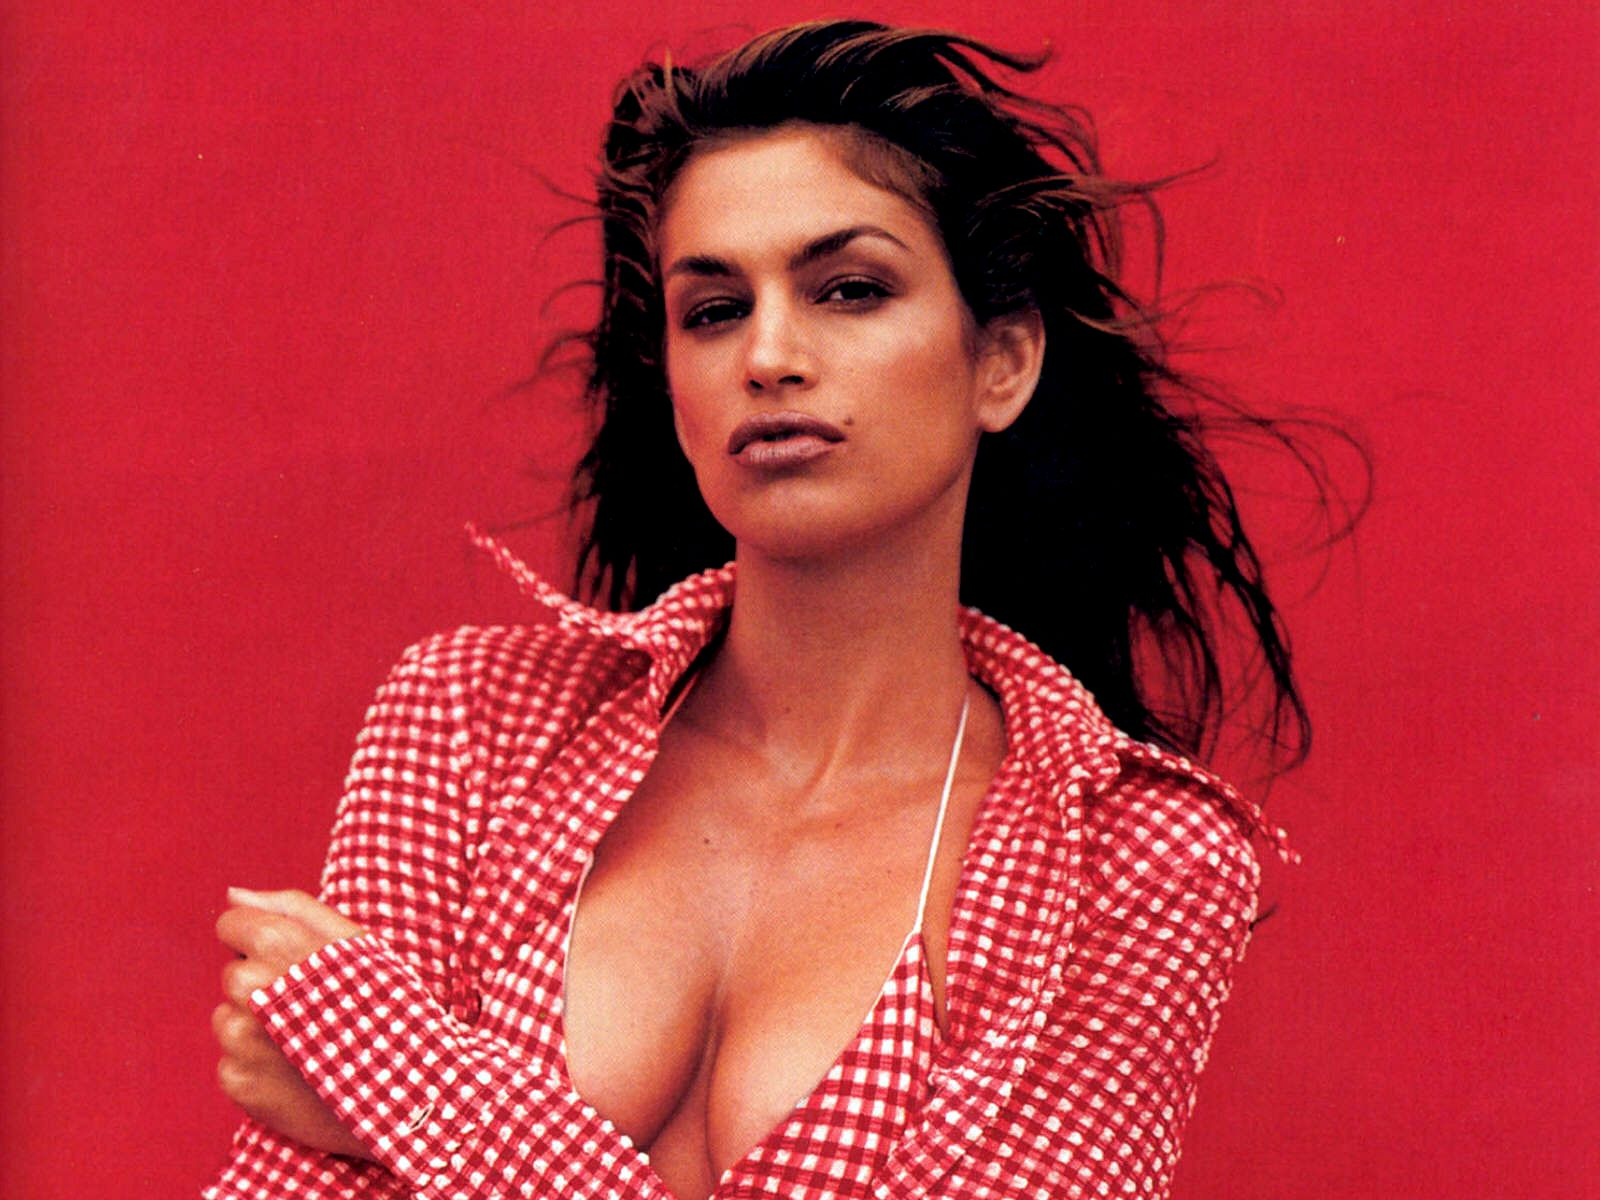 1600x1200 - Cindy Crawford Wallpapers 24